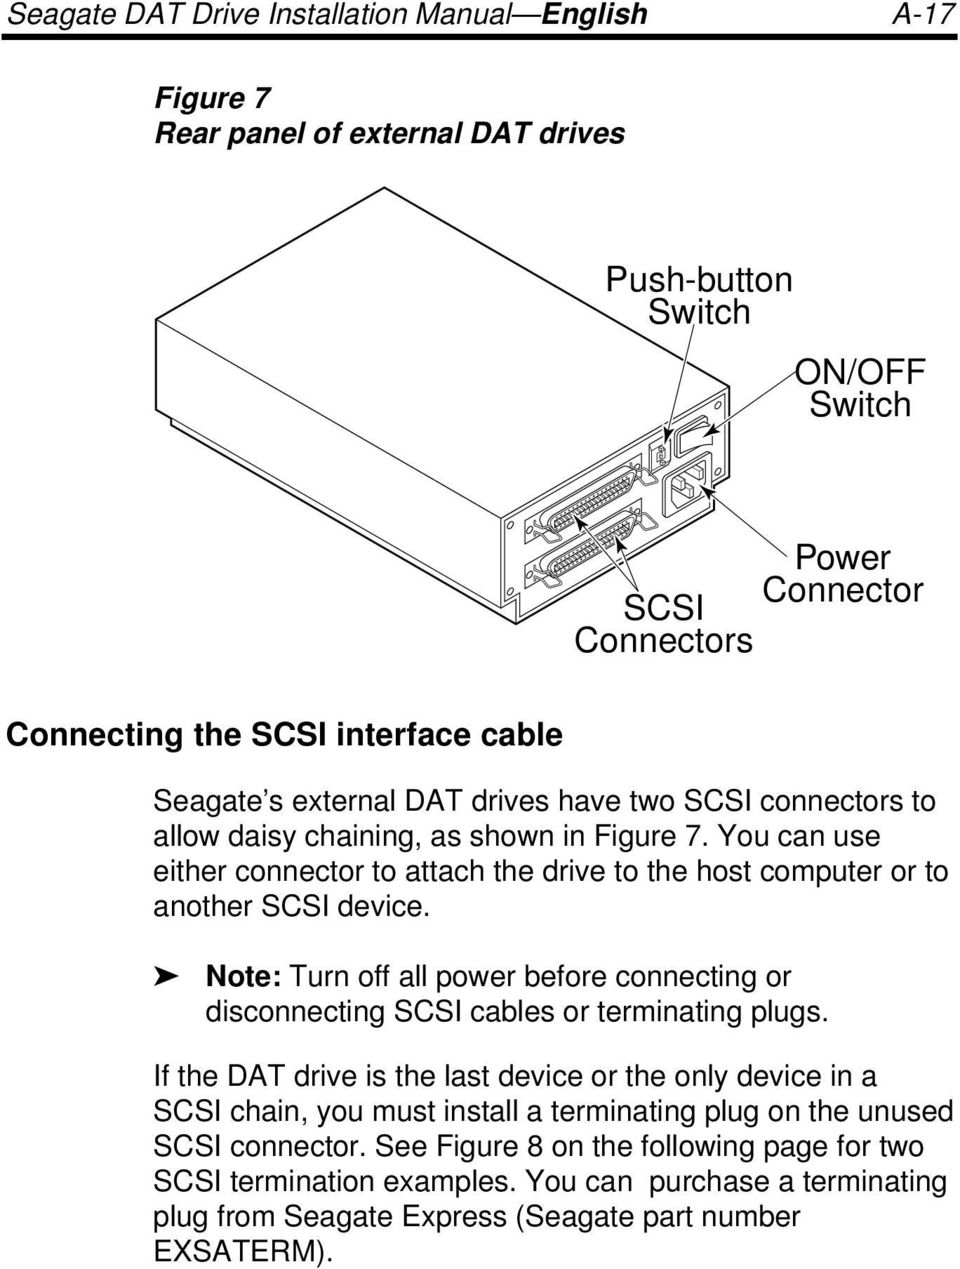 You can use either connector to attach the drive to the host computer or to another SCSI device. Note: Turn off all power before connecting or disconnecting SCSI cables or terminating plugs.